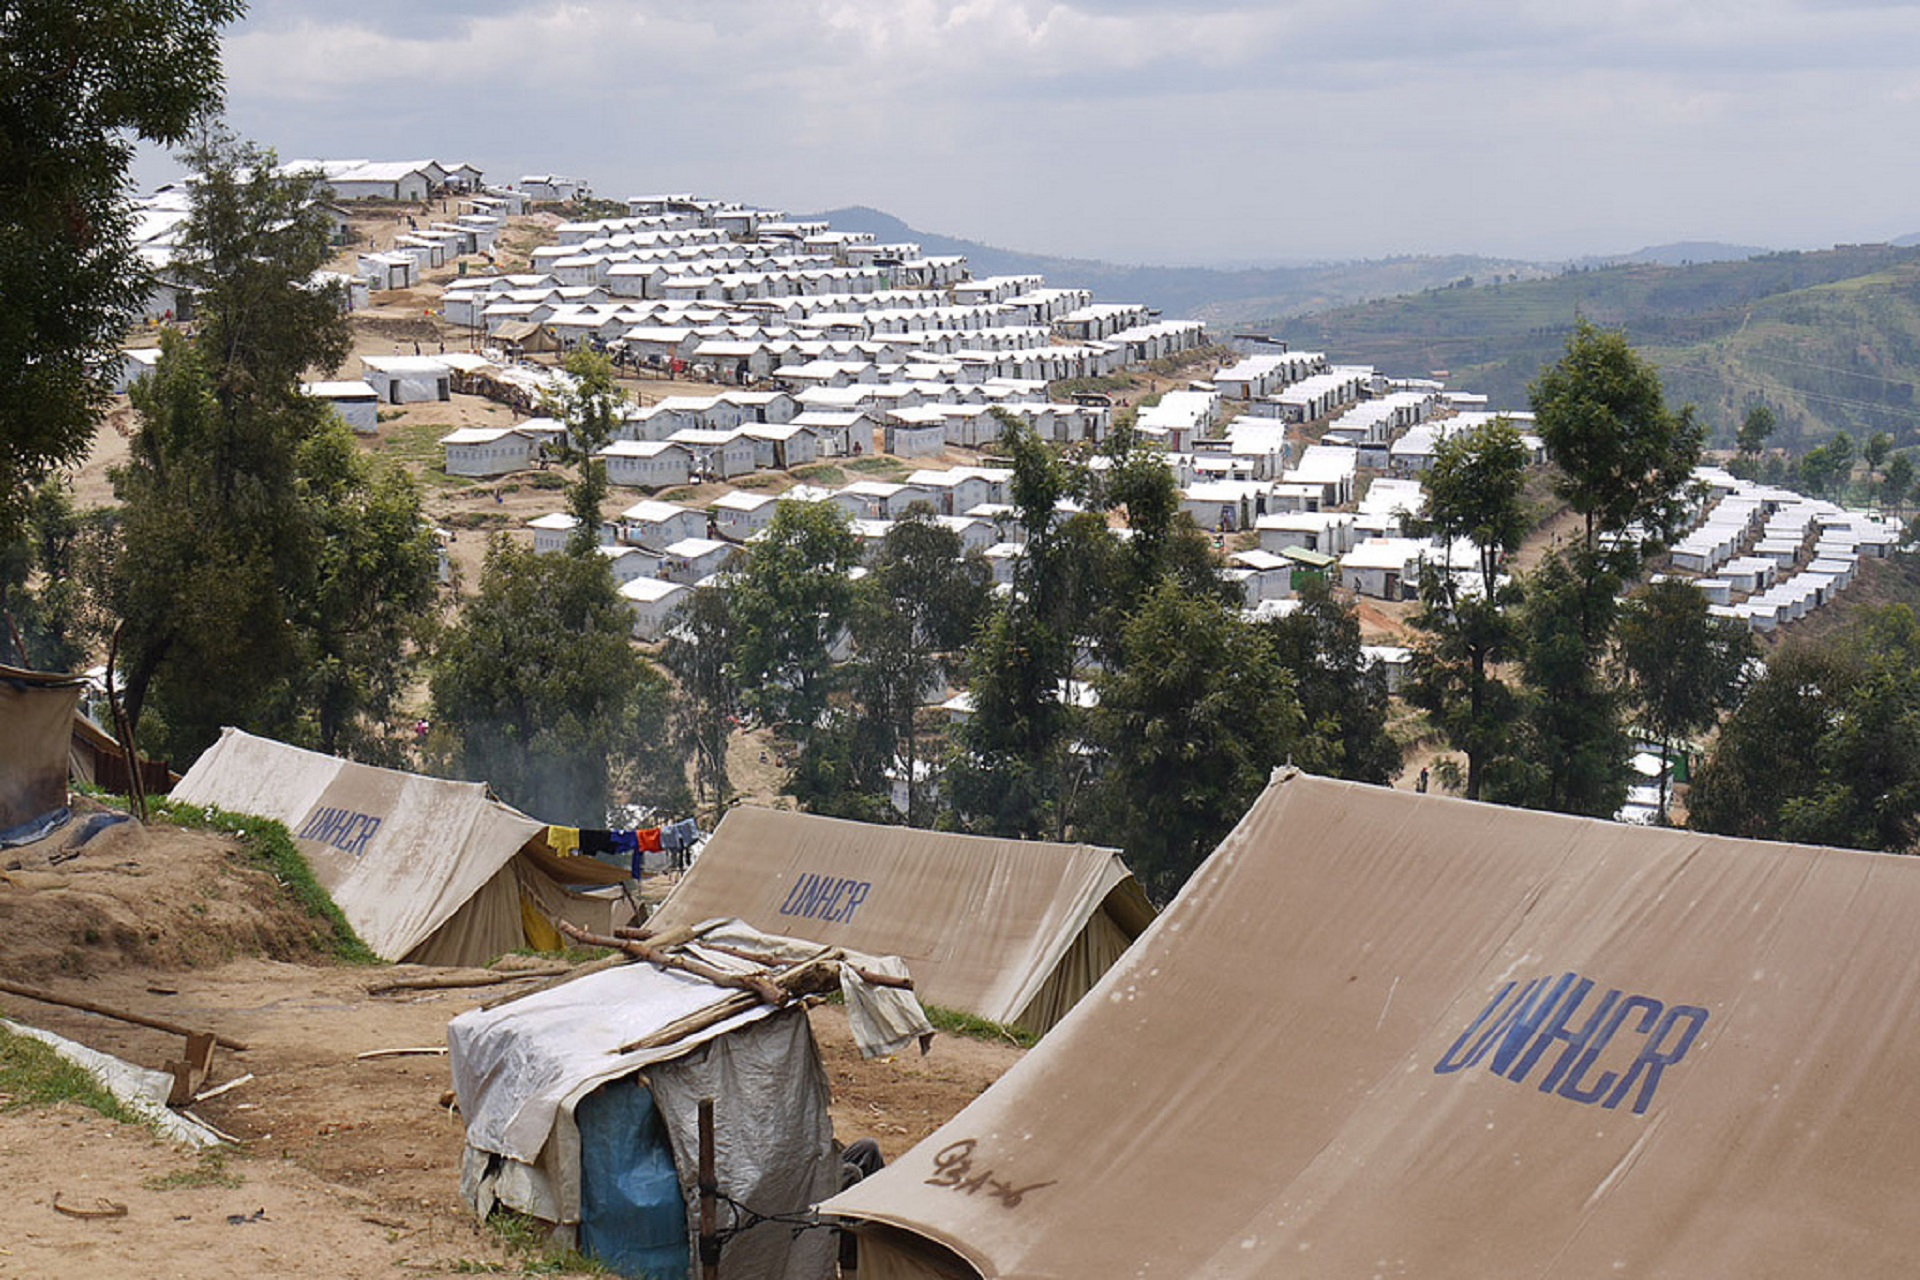 photo of refugee settlement